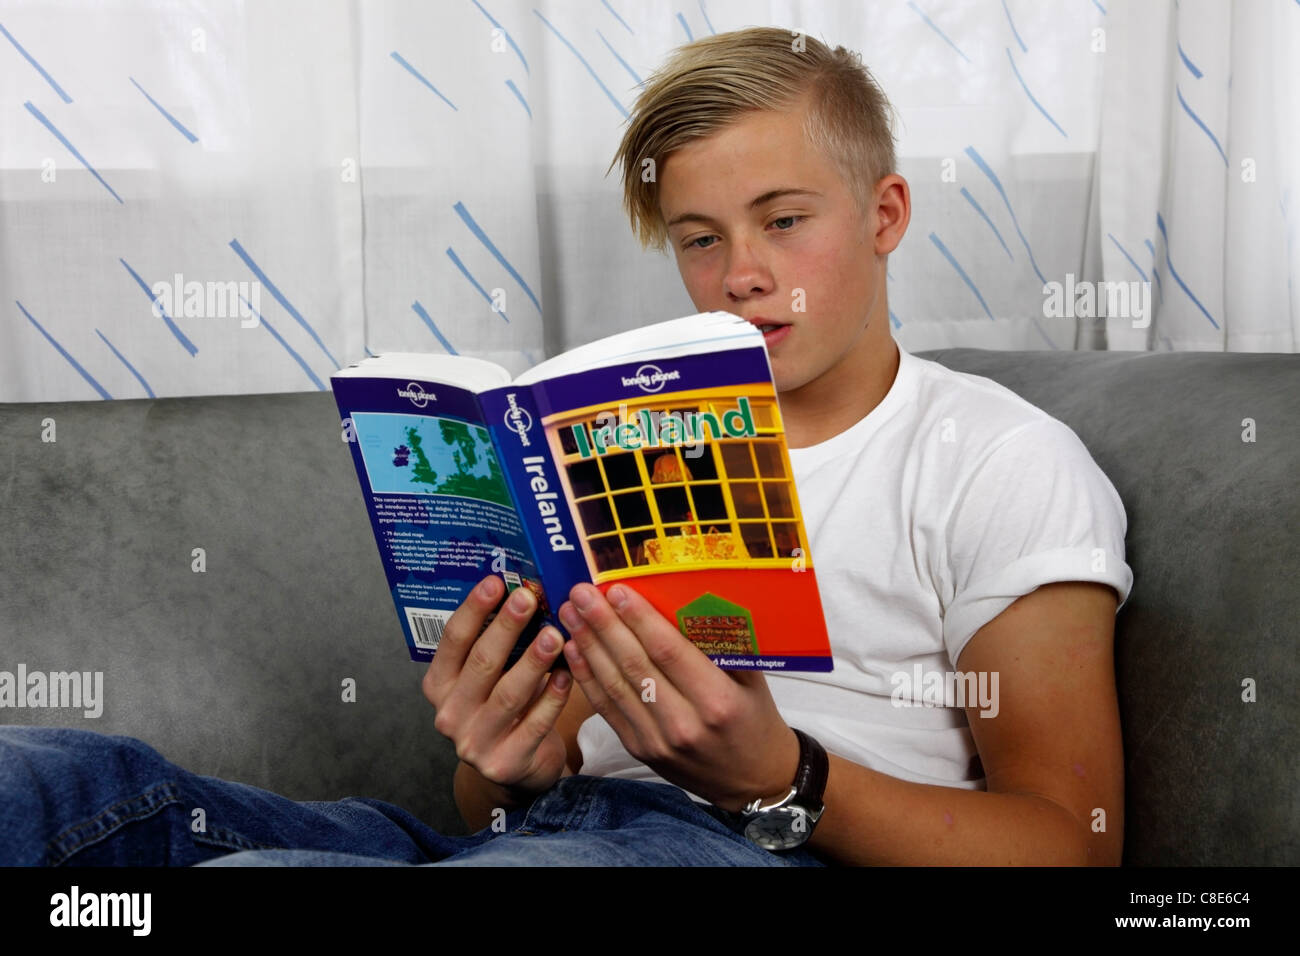 Relaxed Danish, male teenager reading the Lonely Planet guide to Ireland. - Stock Image